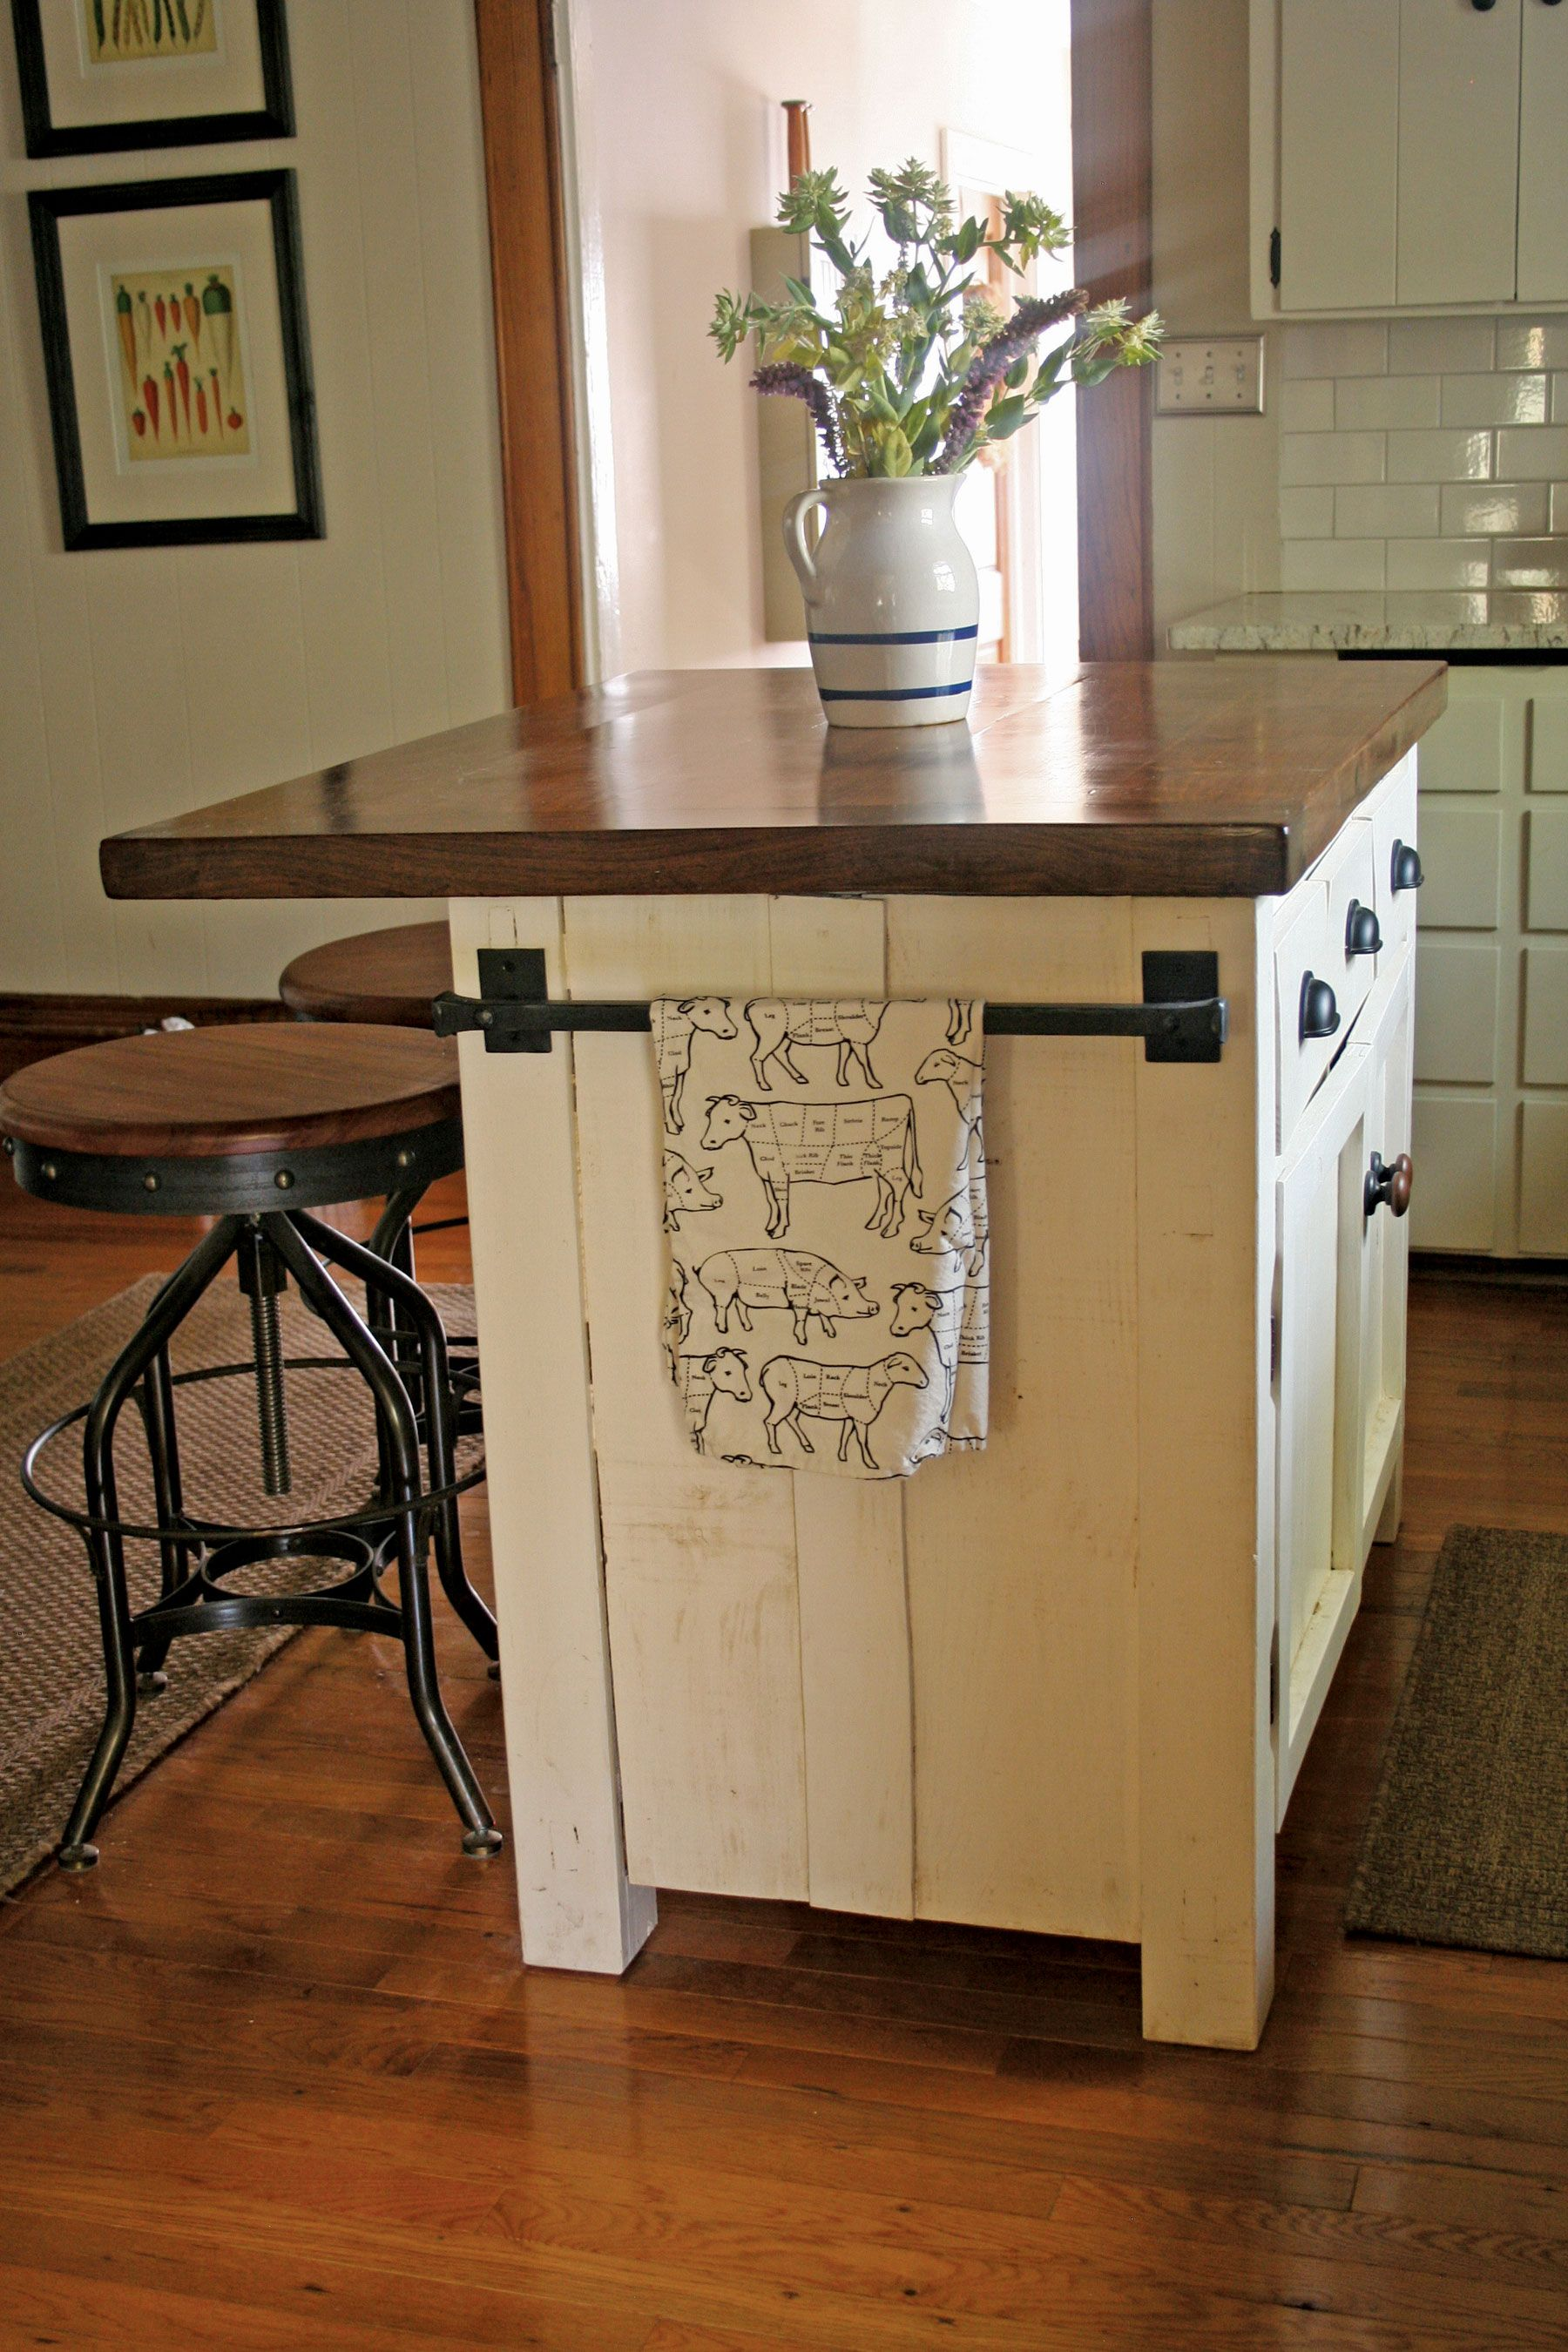 Portable kitchen island designs - Do It Yourself Kitchen Island Home Lumber Mill Crafting Dimensional Sawed Timbers Tools